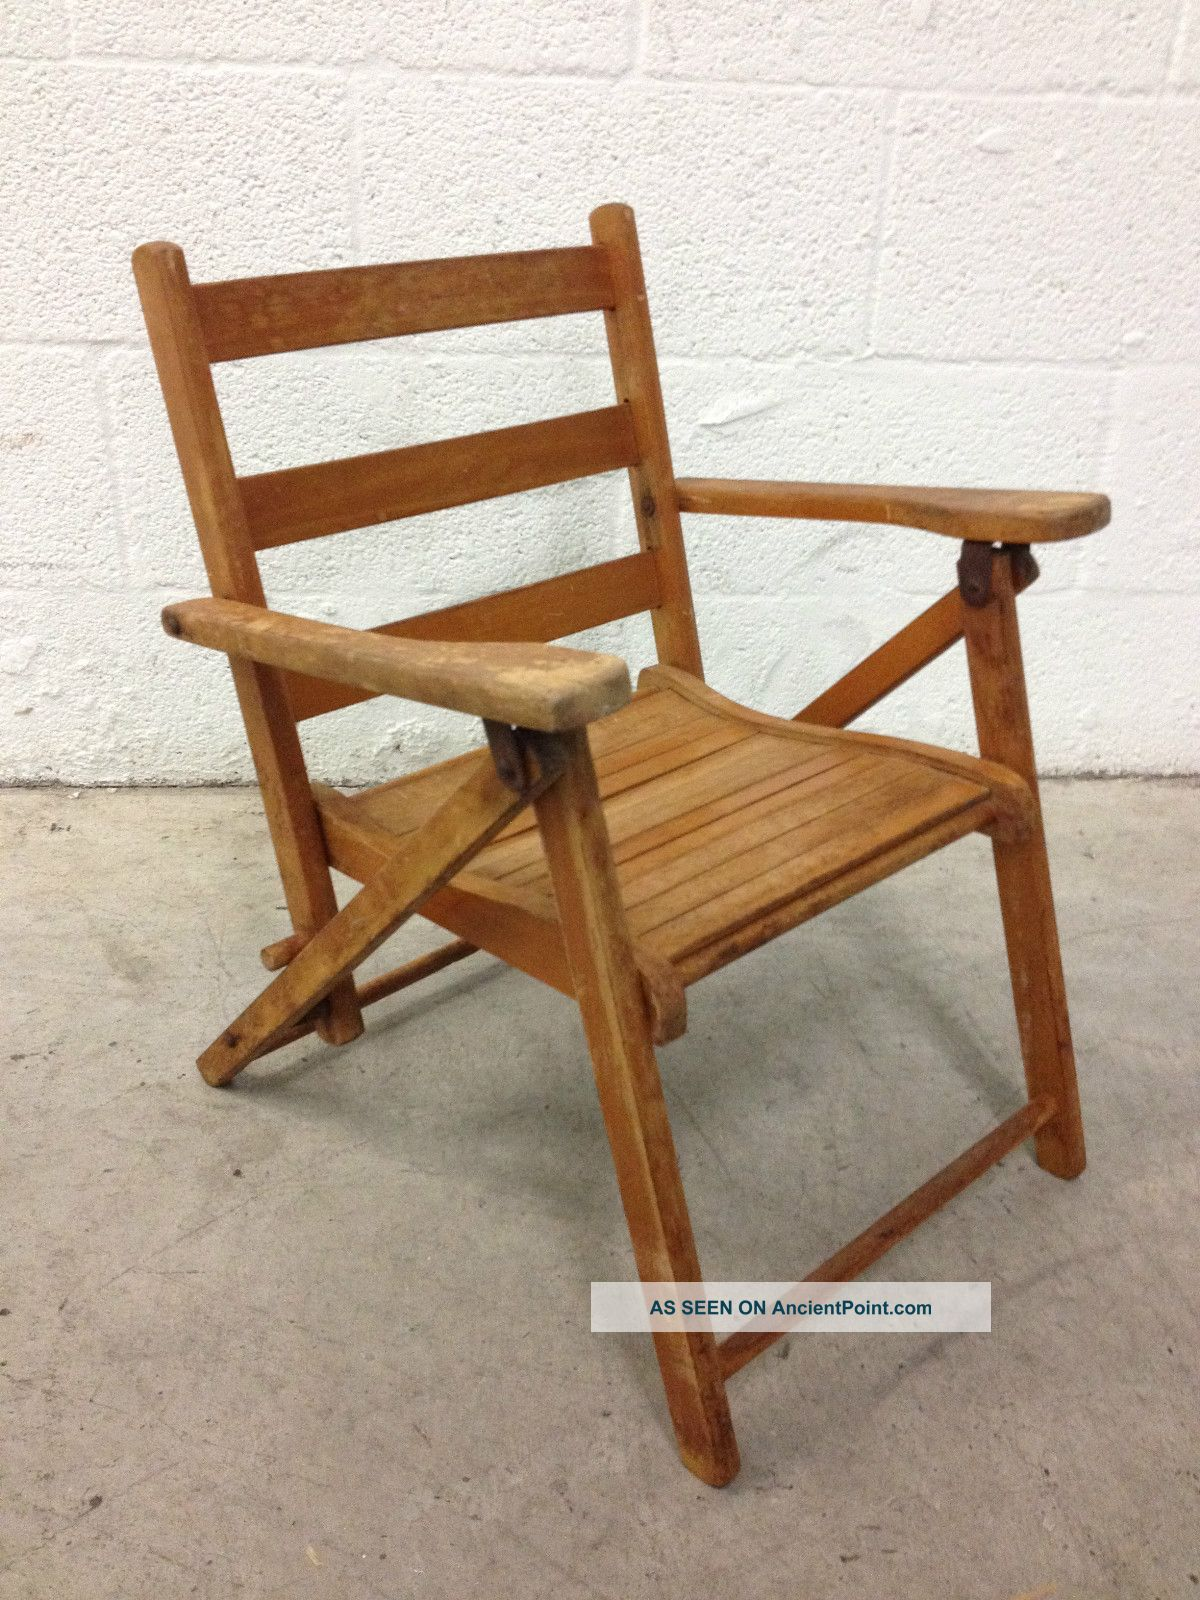 Antique Teak Wood Childs Folding Beach Chair 1900-1950 photo